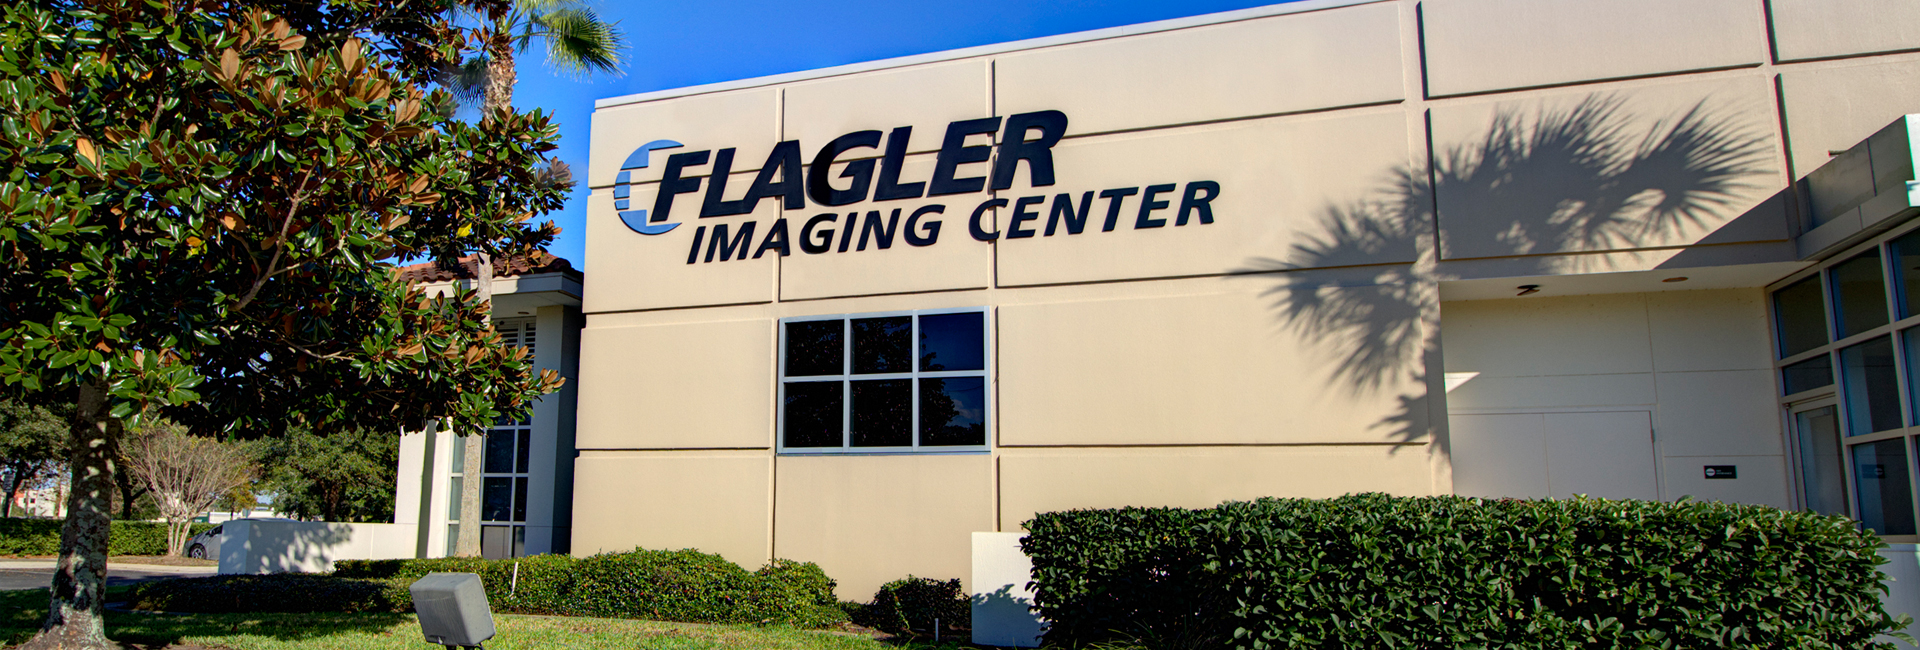 FlaglerImageCenter